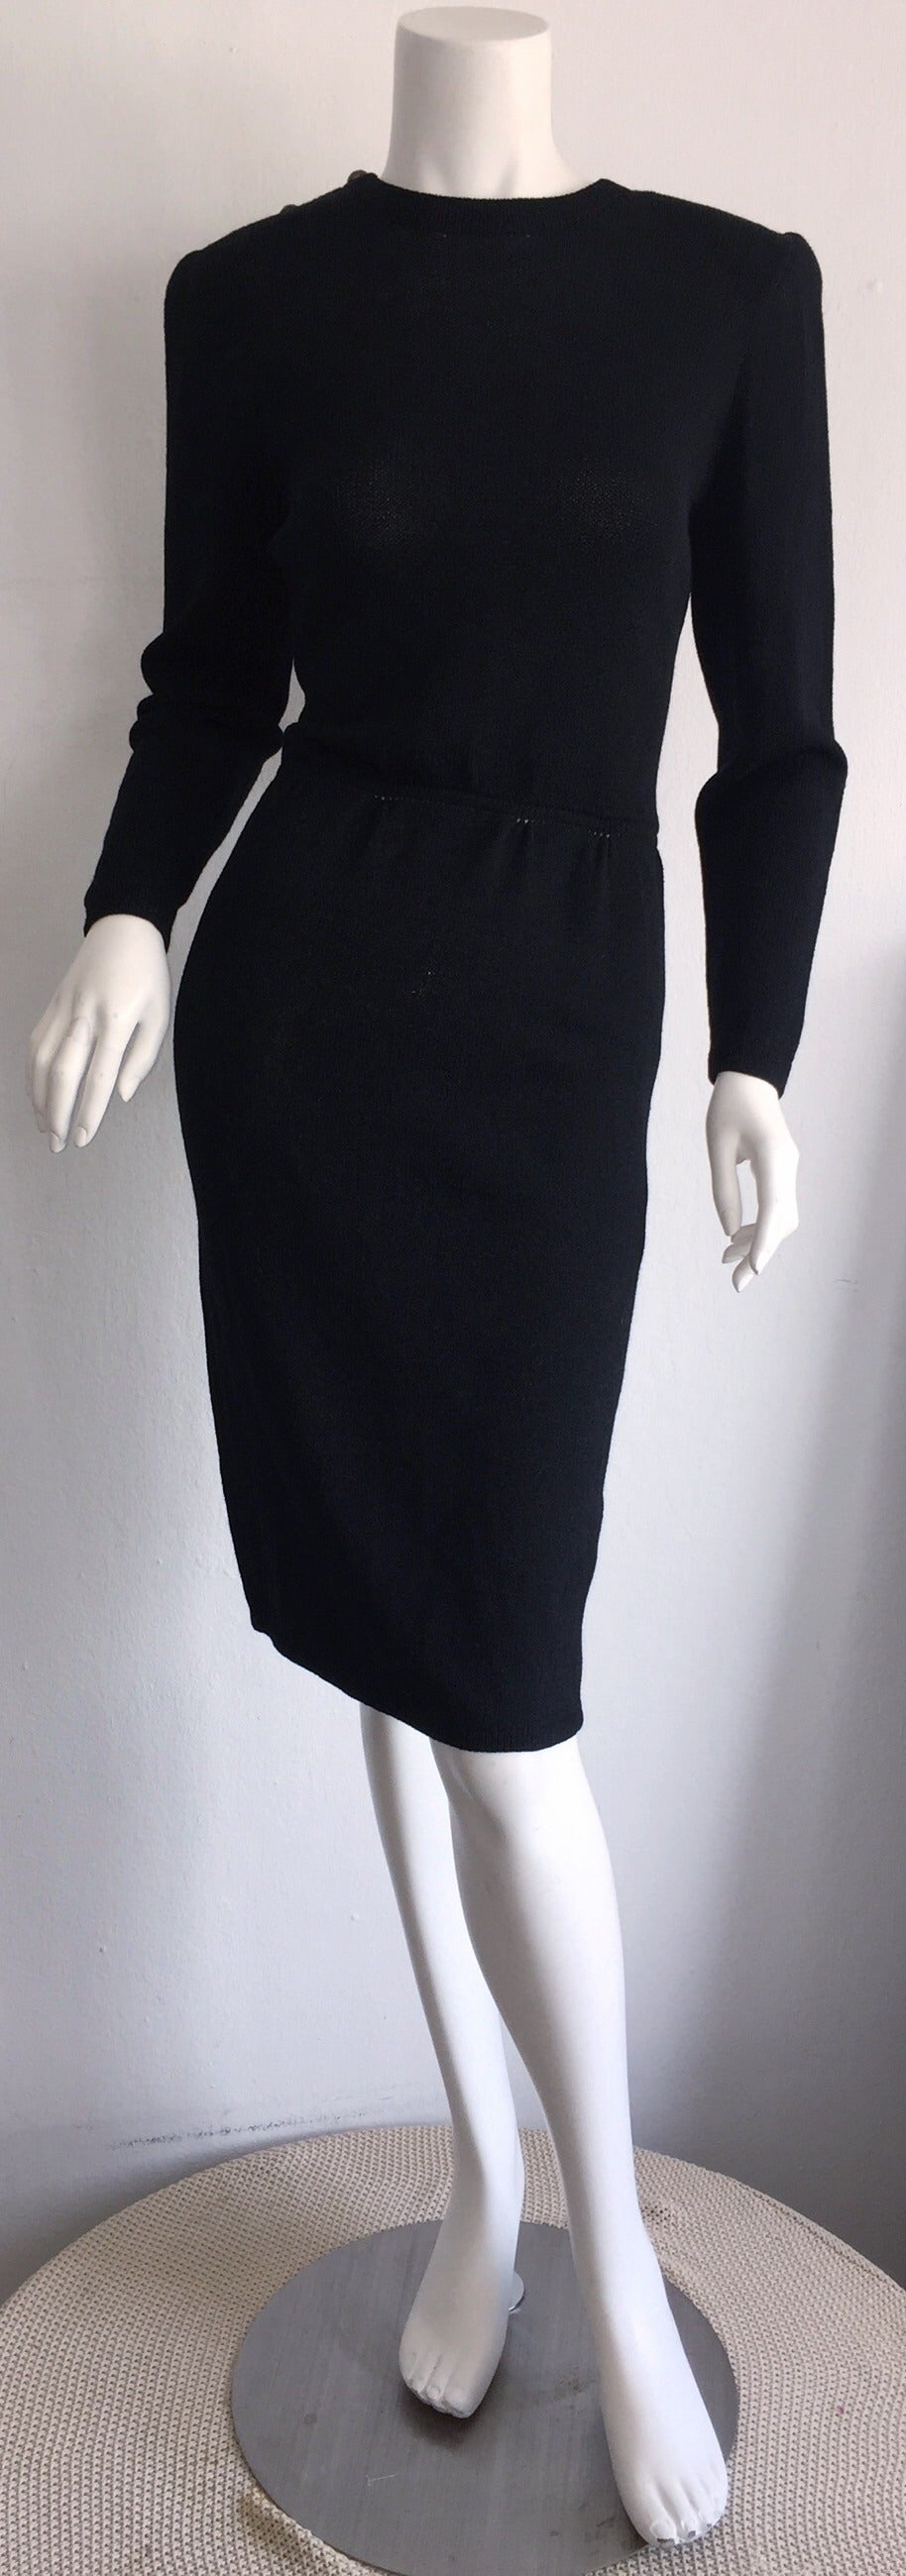 Vintage St. John Neiman Marcus Black Dress w/ Sheer Sparkle Zebra Back In Excellent Condition For Sale In Chicago, IL